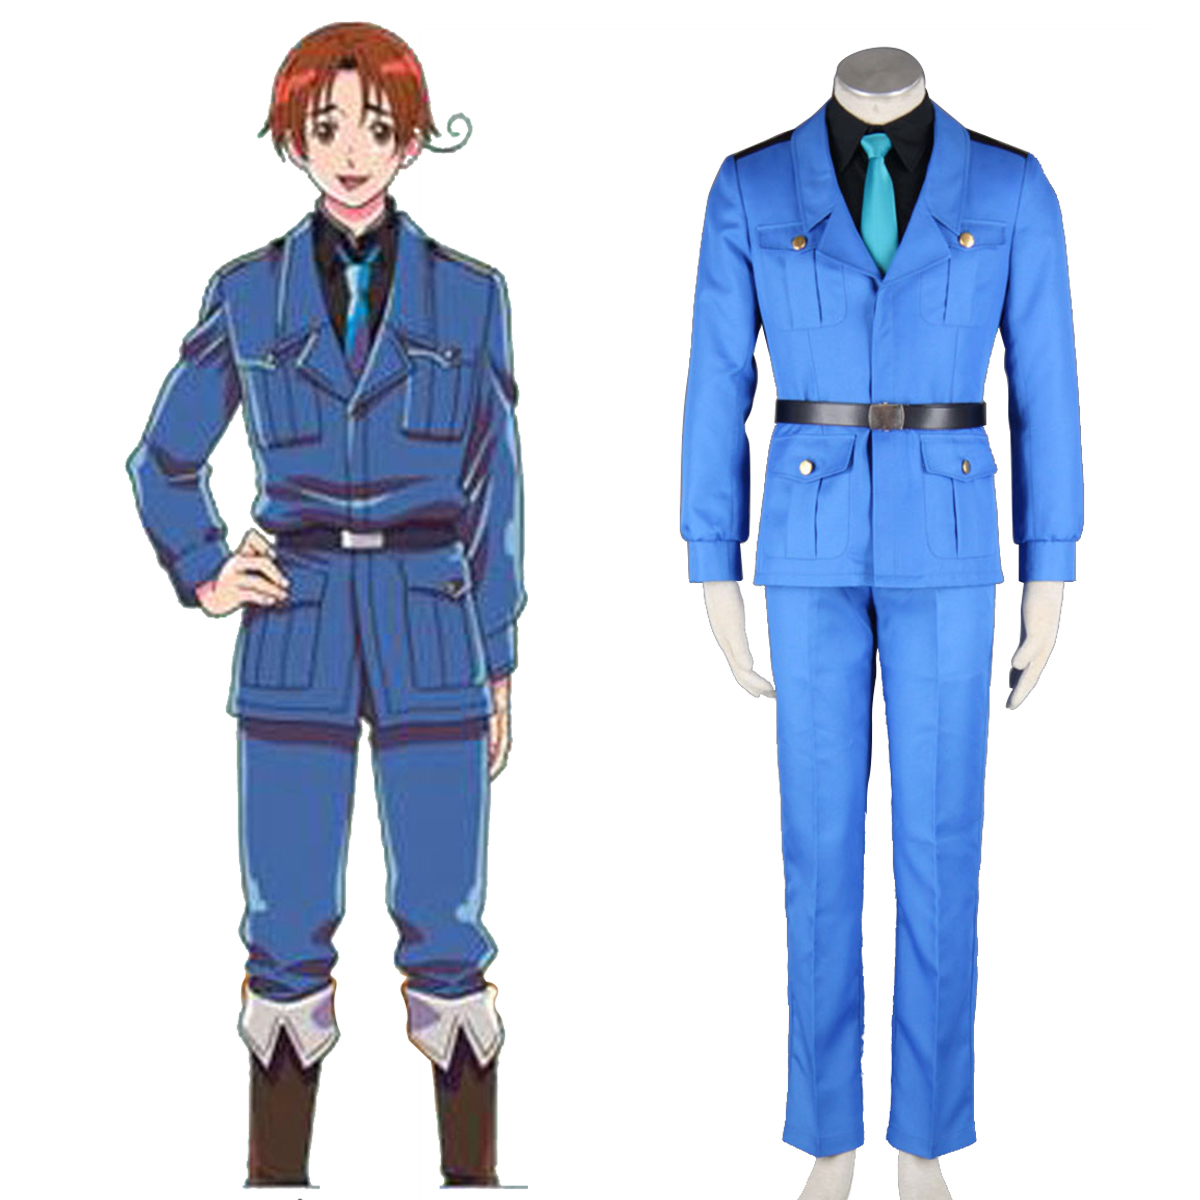 Axis Powers Hetalia APH North Italy Feliciano Vargas 3 Cosplay Kostymer Online Butikken